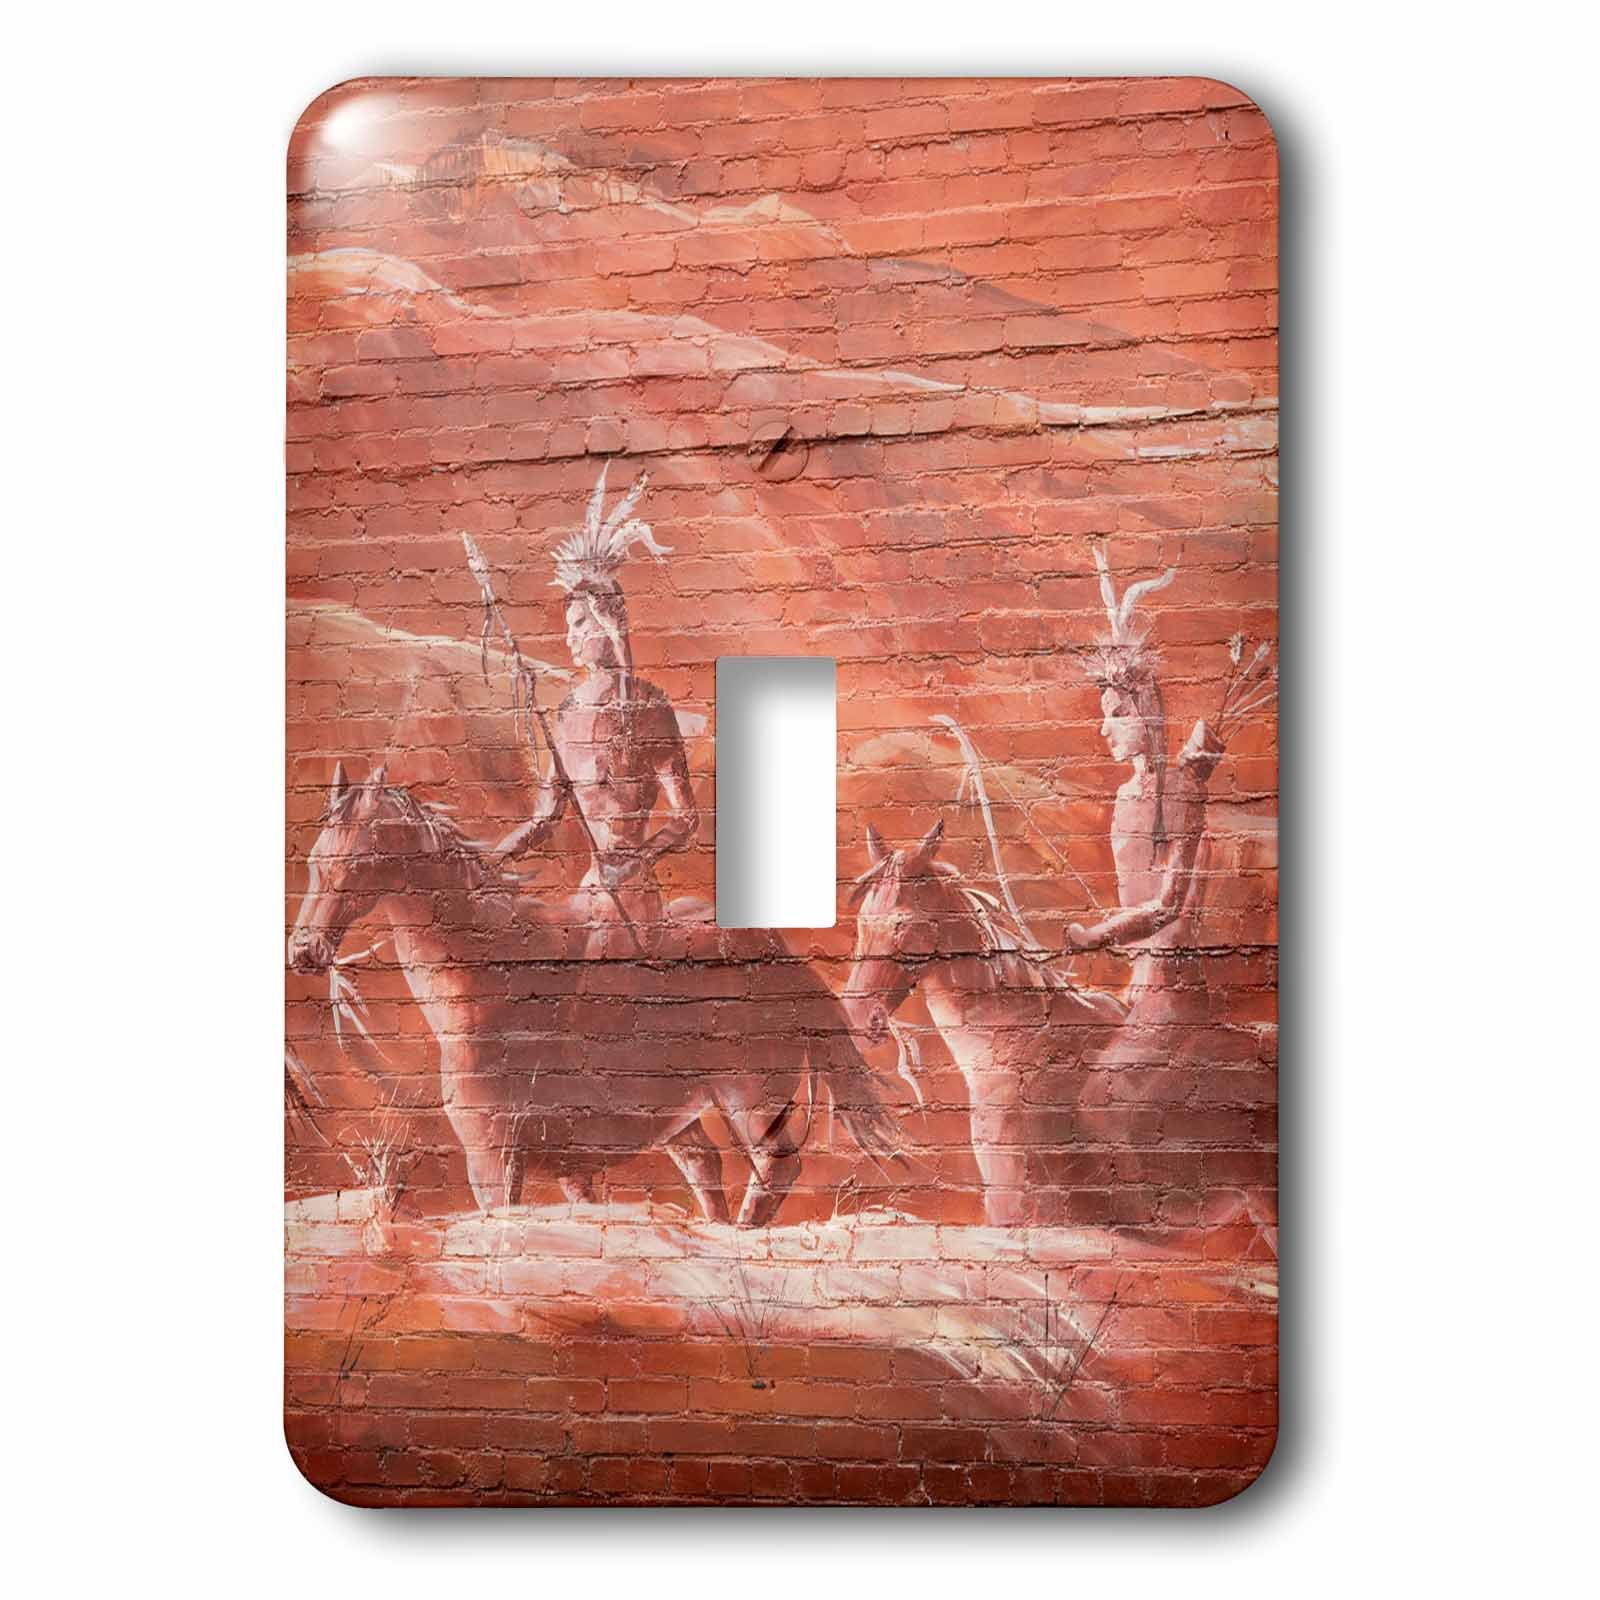 3dRose LSP_230401_1 USA, Colorado, Delta. Native-American Scene decorates Brick Wall Toggle Switch, by 3dRose